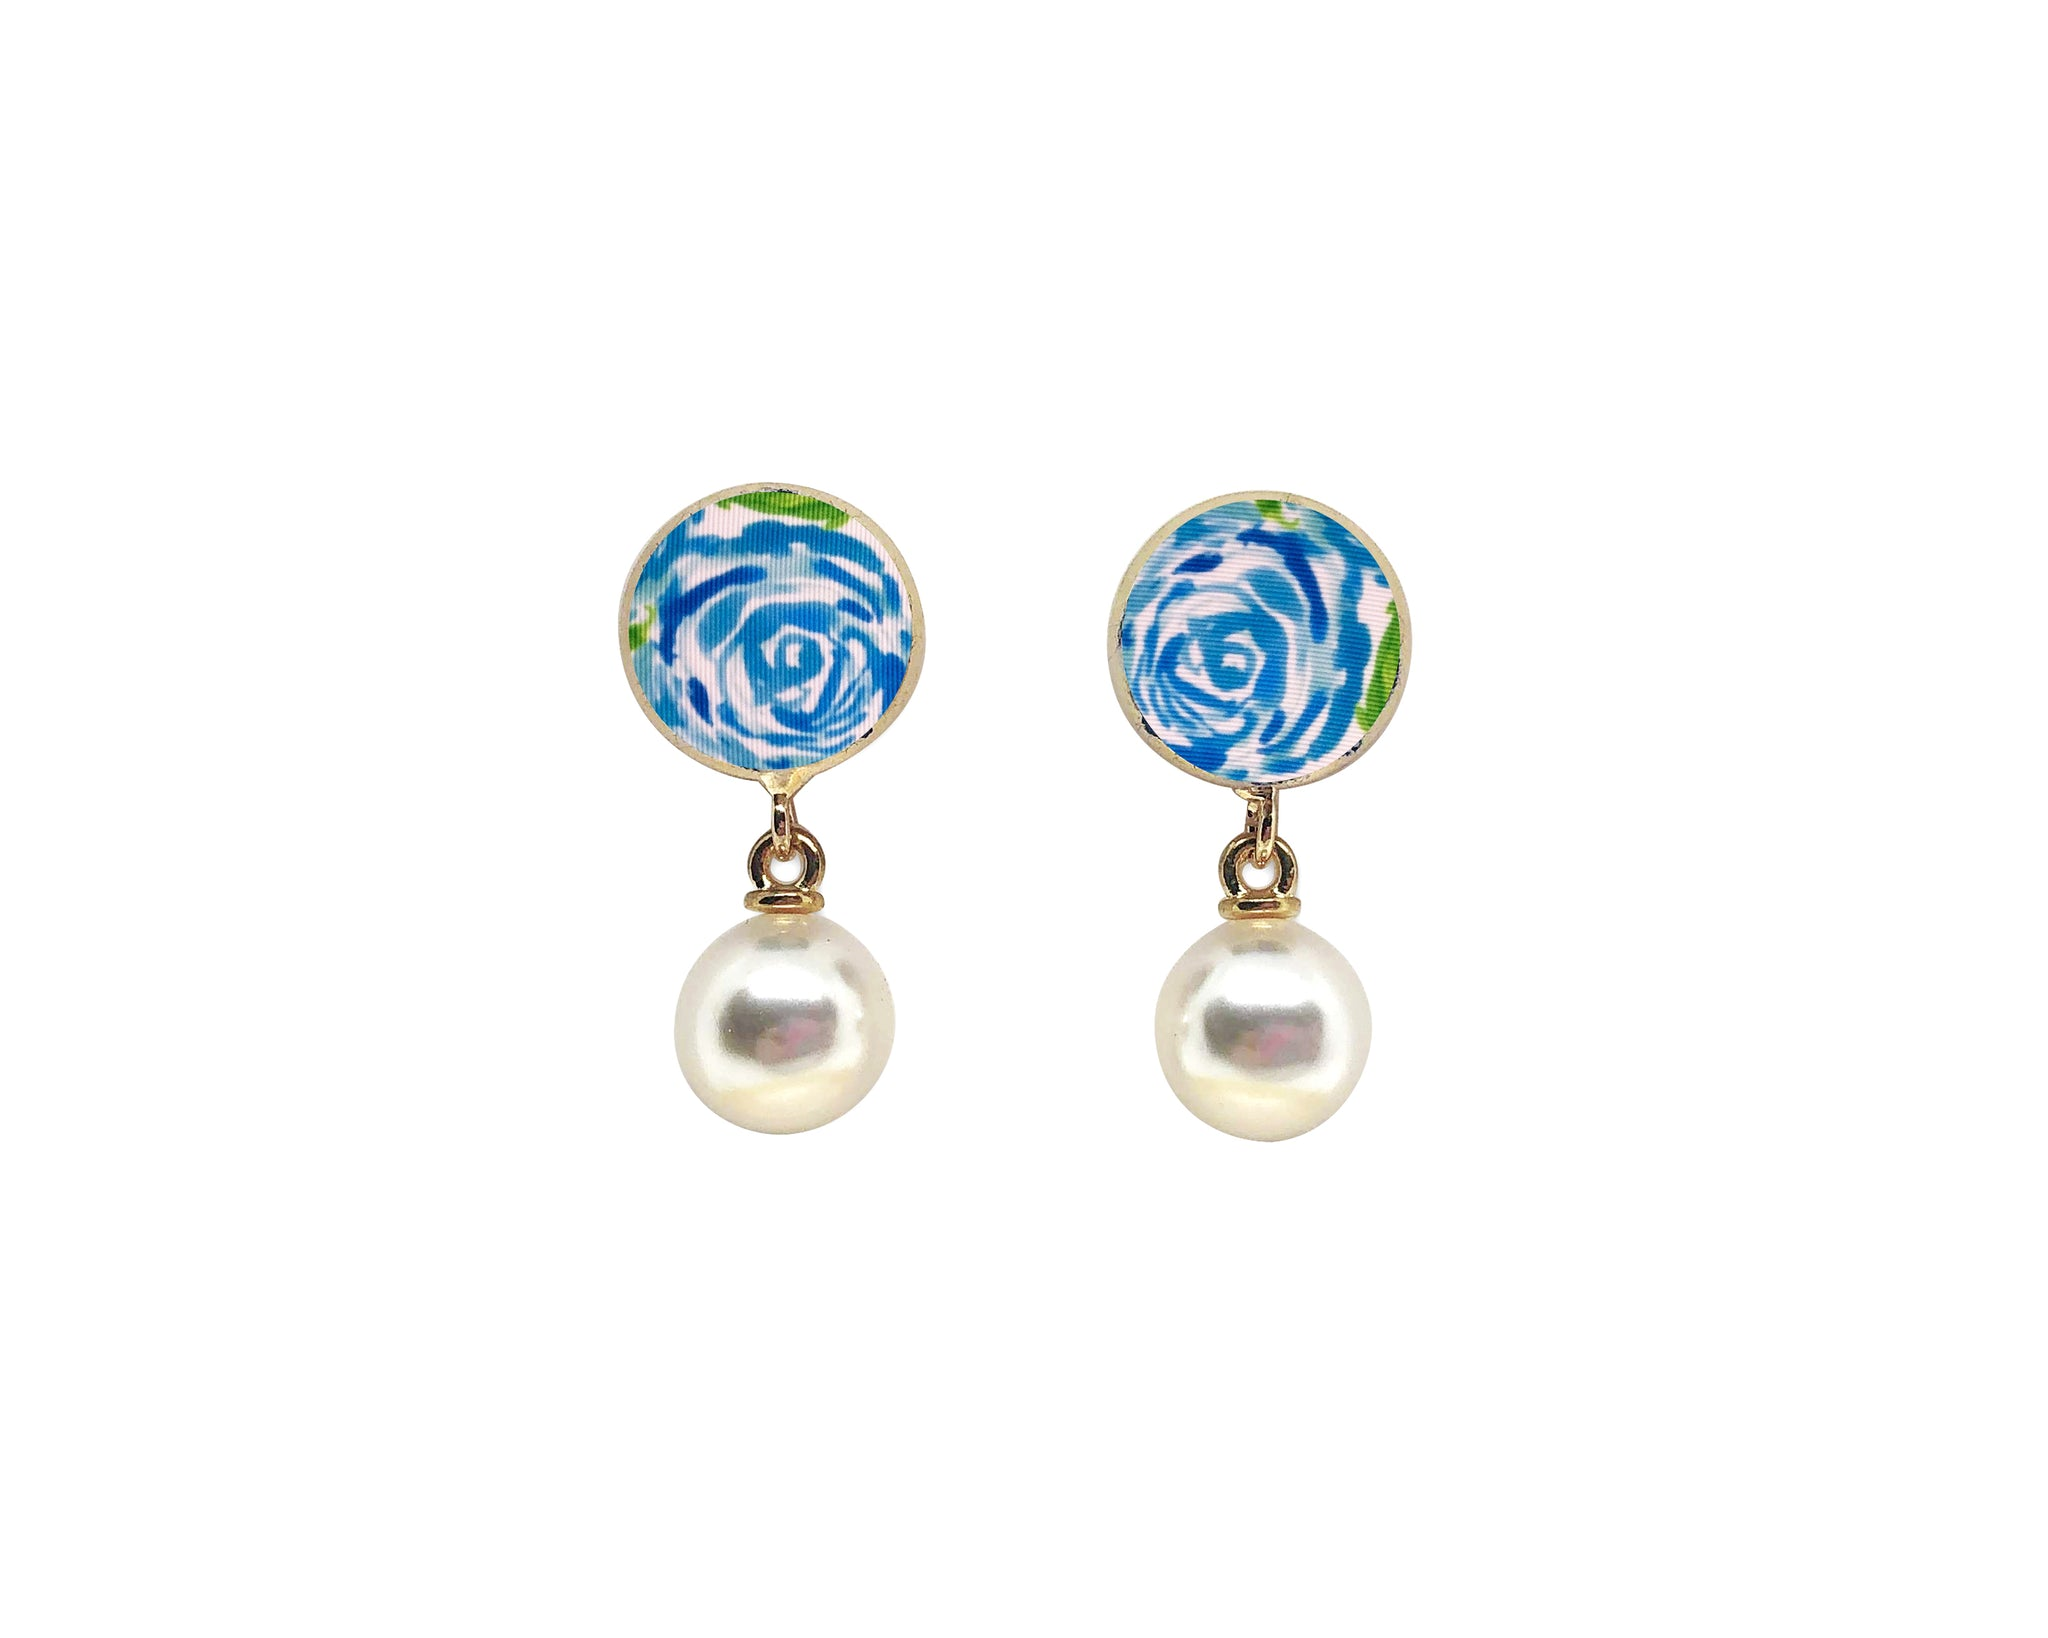 Lilly Pulitzer Inspired Studs - First Impression